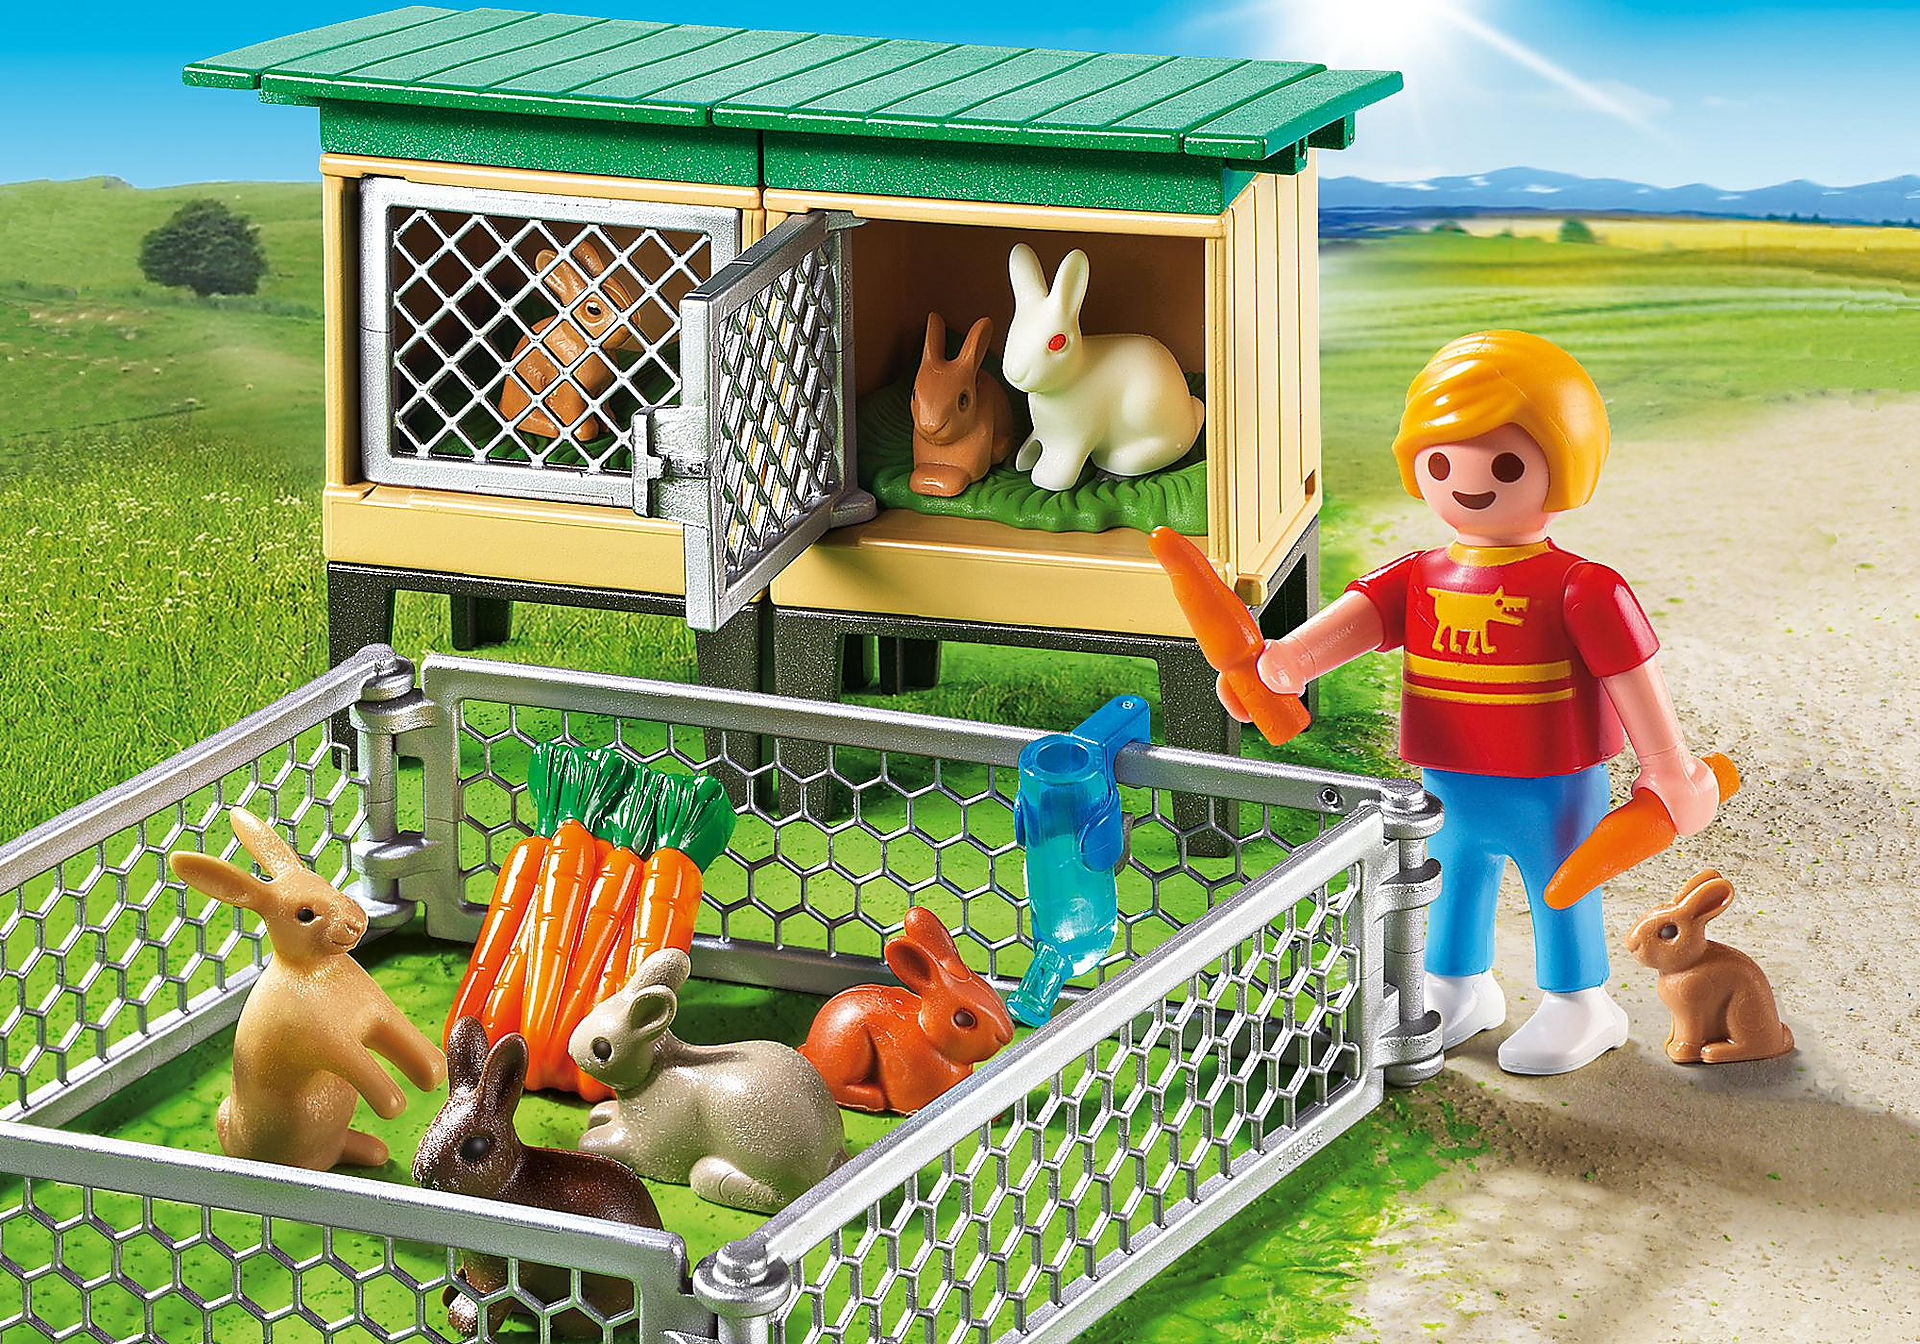 http://media.playmobil.com/i/playmobil/6140_product_detail/Rabbit Pen with Hutch